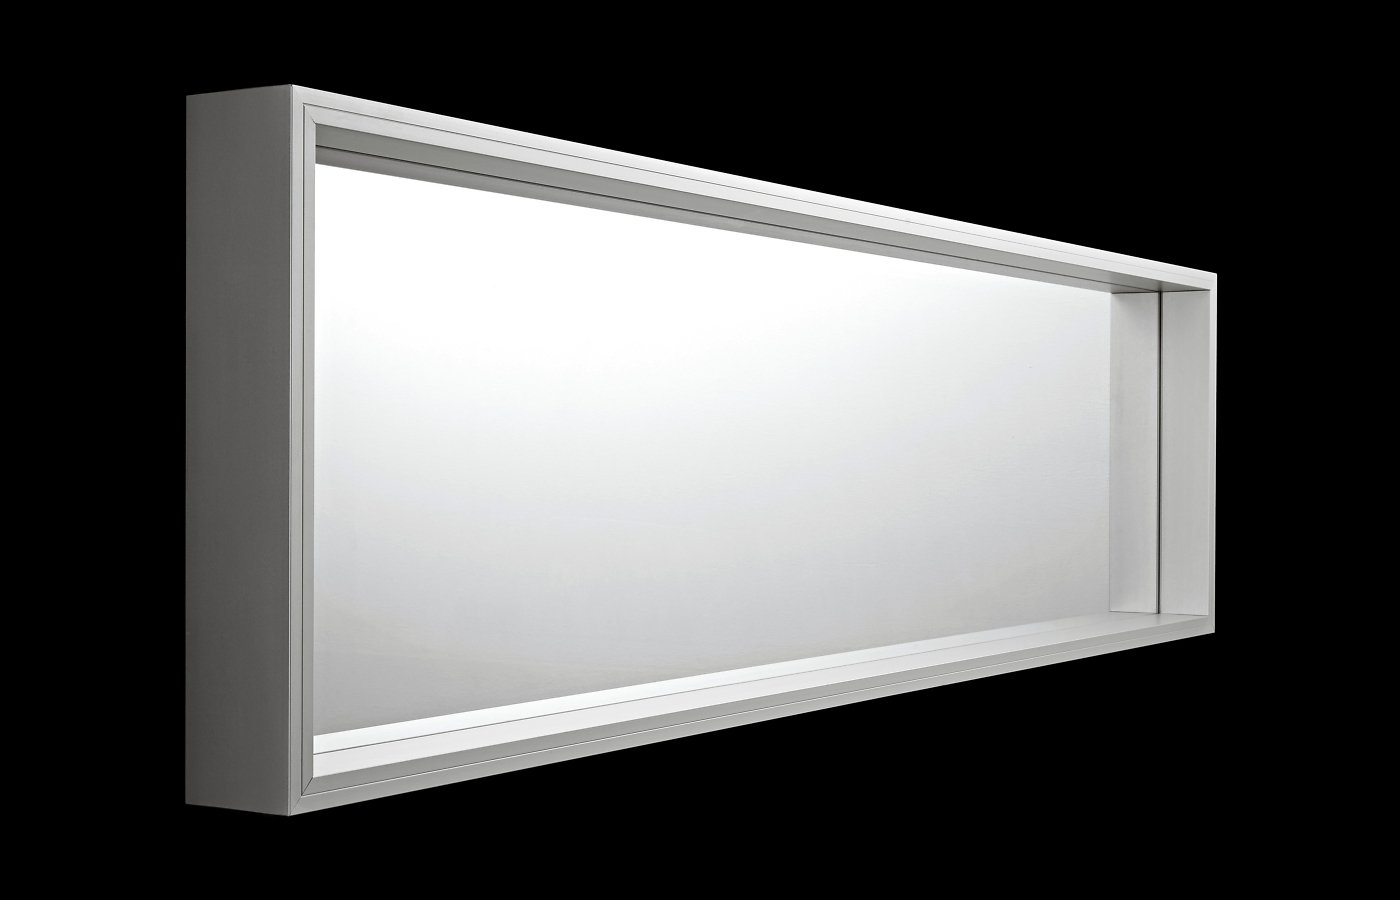 Extra Large Mirror from Kristalia, designed by Luciano Bertoncini